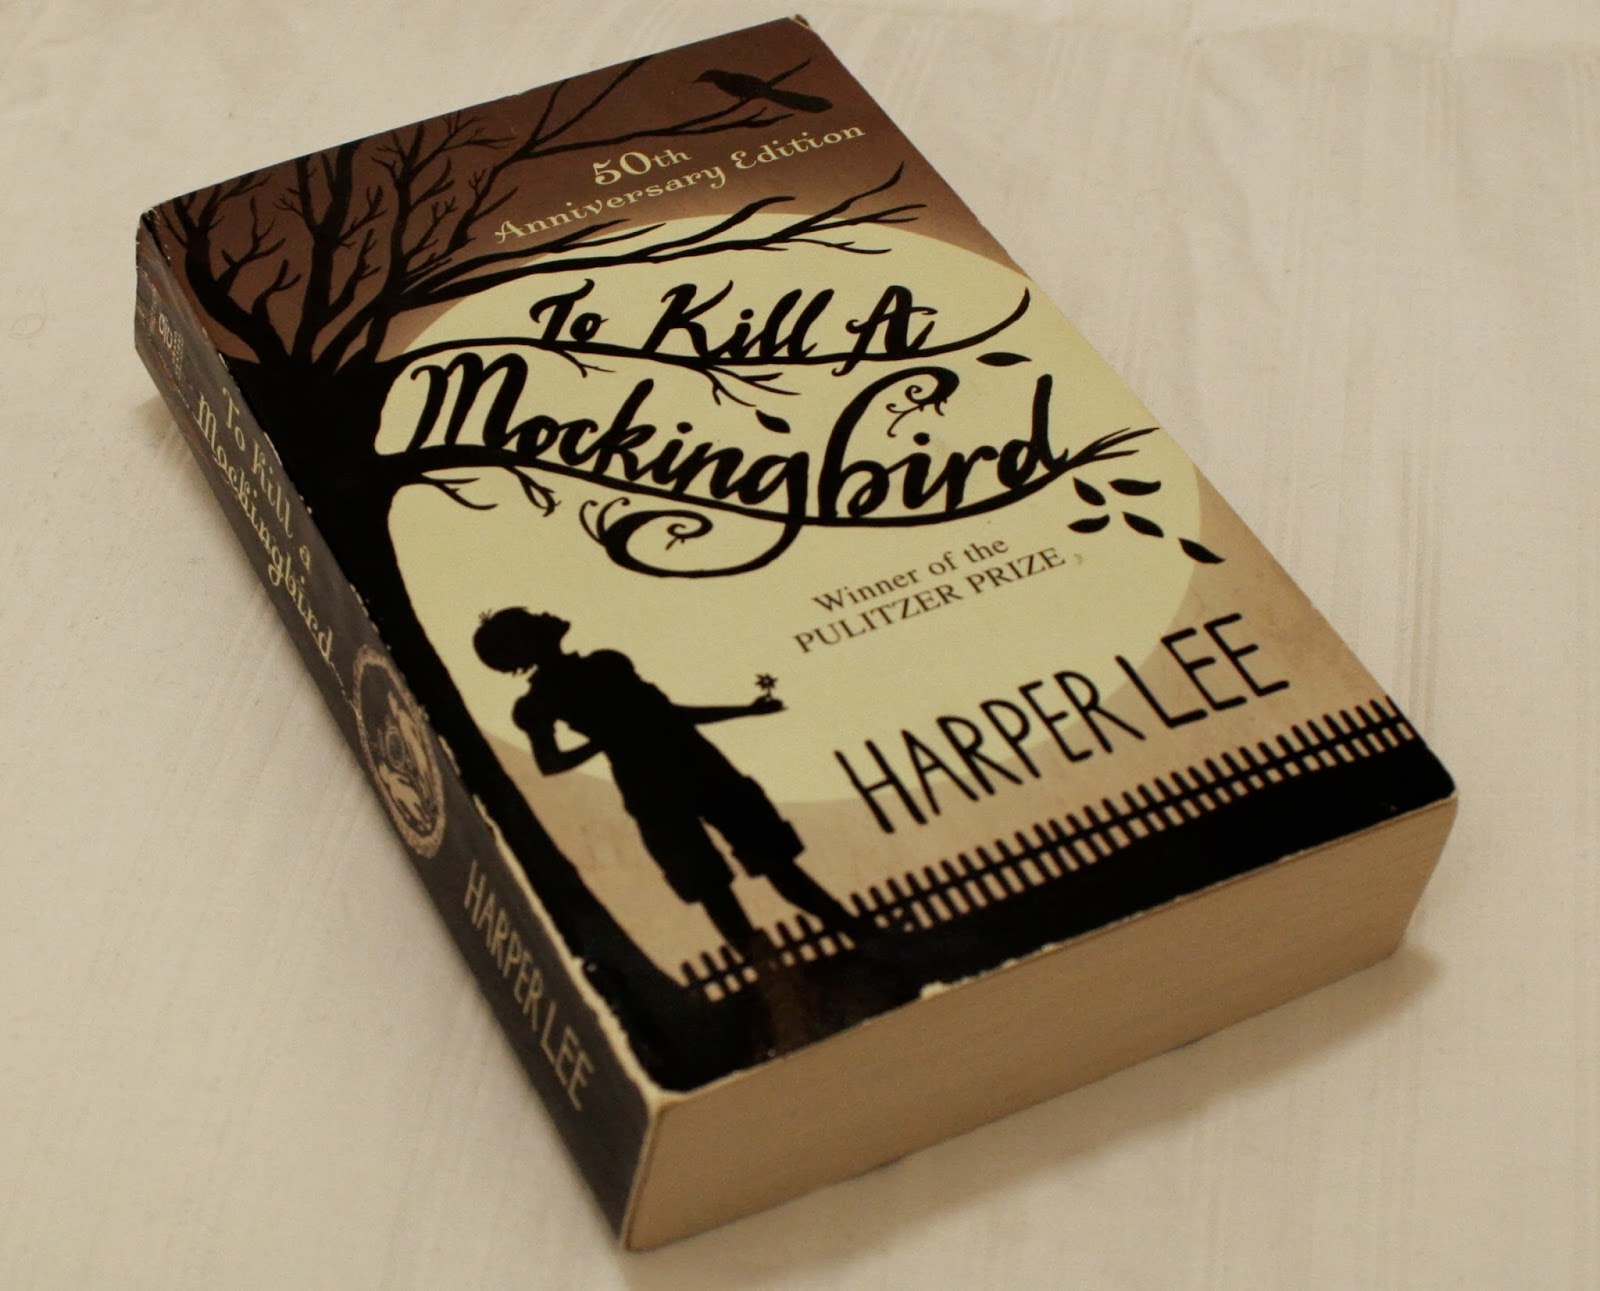 Kill mockingbird scrapbook ideas - From Amazon Com The Unforgettable Novel Of A Childhood In A Sleepy Southern Town And The Crisis Of Conscience That Rocked It To Kill A Mockingbird